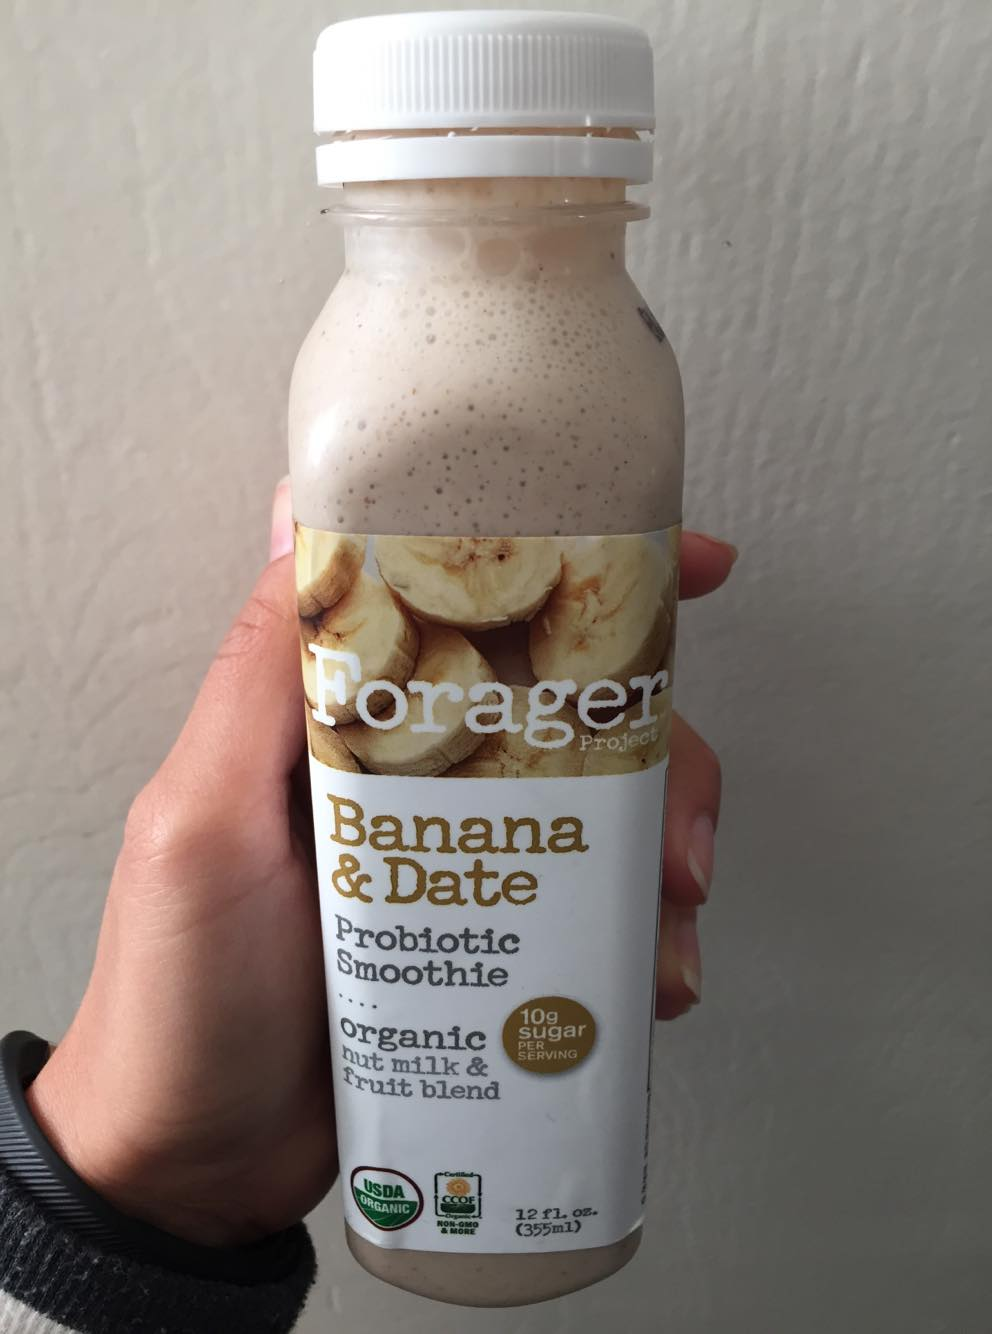 Forager Project Banana & Date Probiotic Smoothie